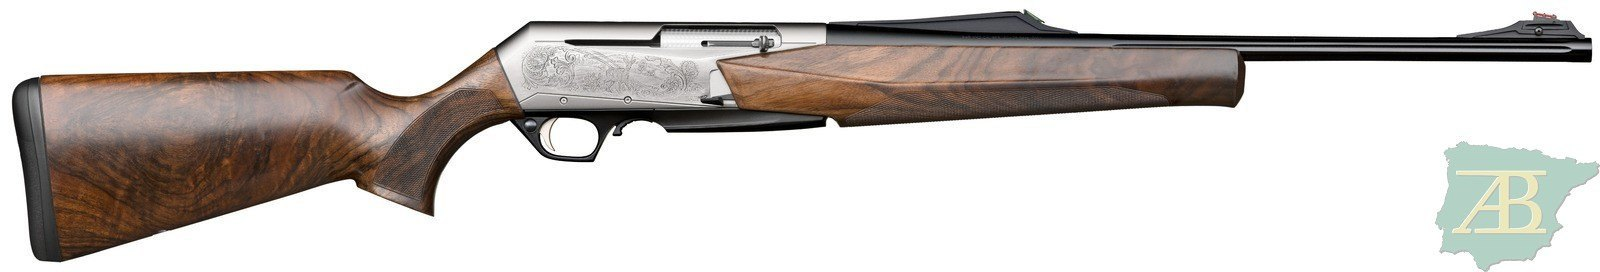 RIFLE SEMIAUTOMÁTICO DE CAZA BROWNING MK3 ECLIPSE FLUTED